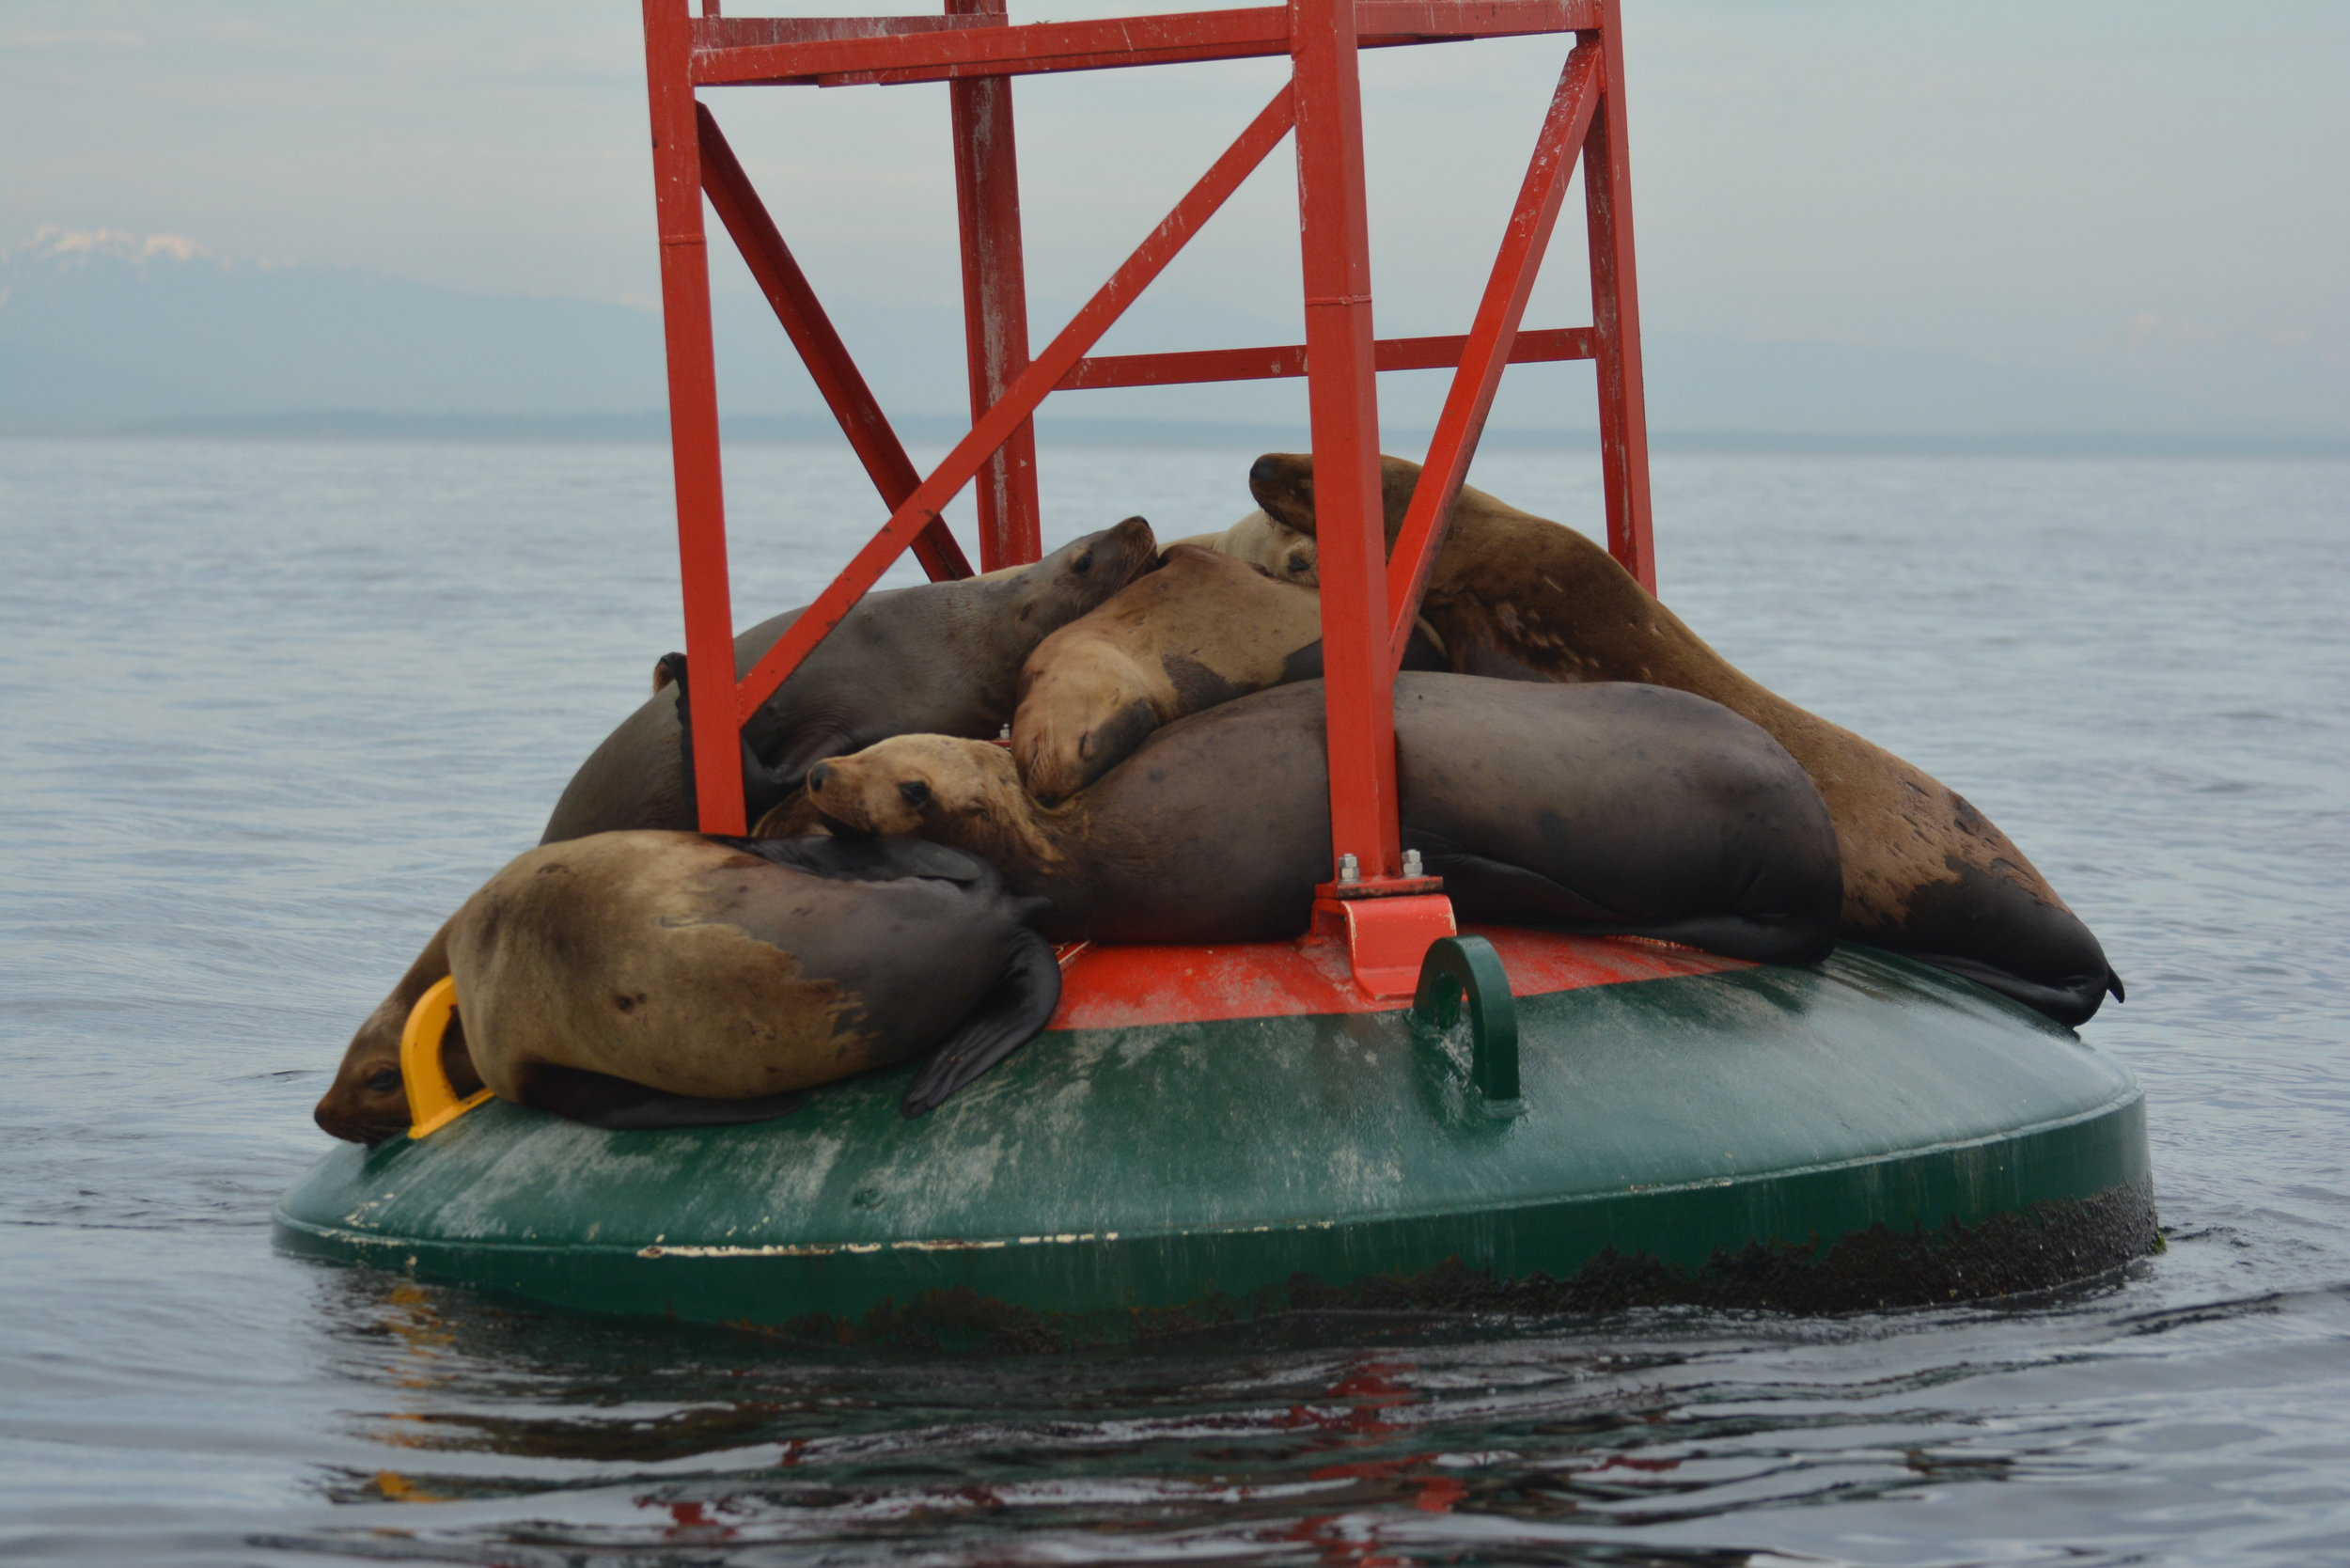 Steller sea lions huddled up on a buoy near Entrance island. Photo by Alanna Vivani